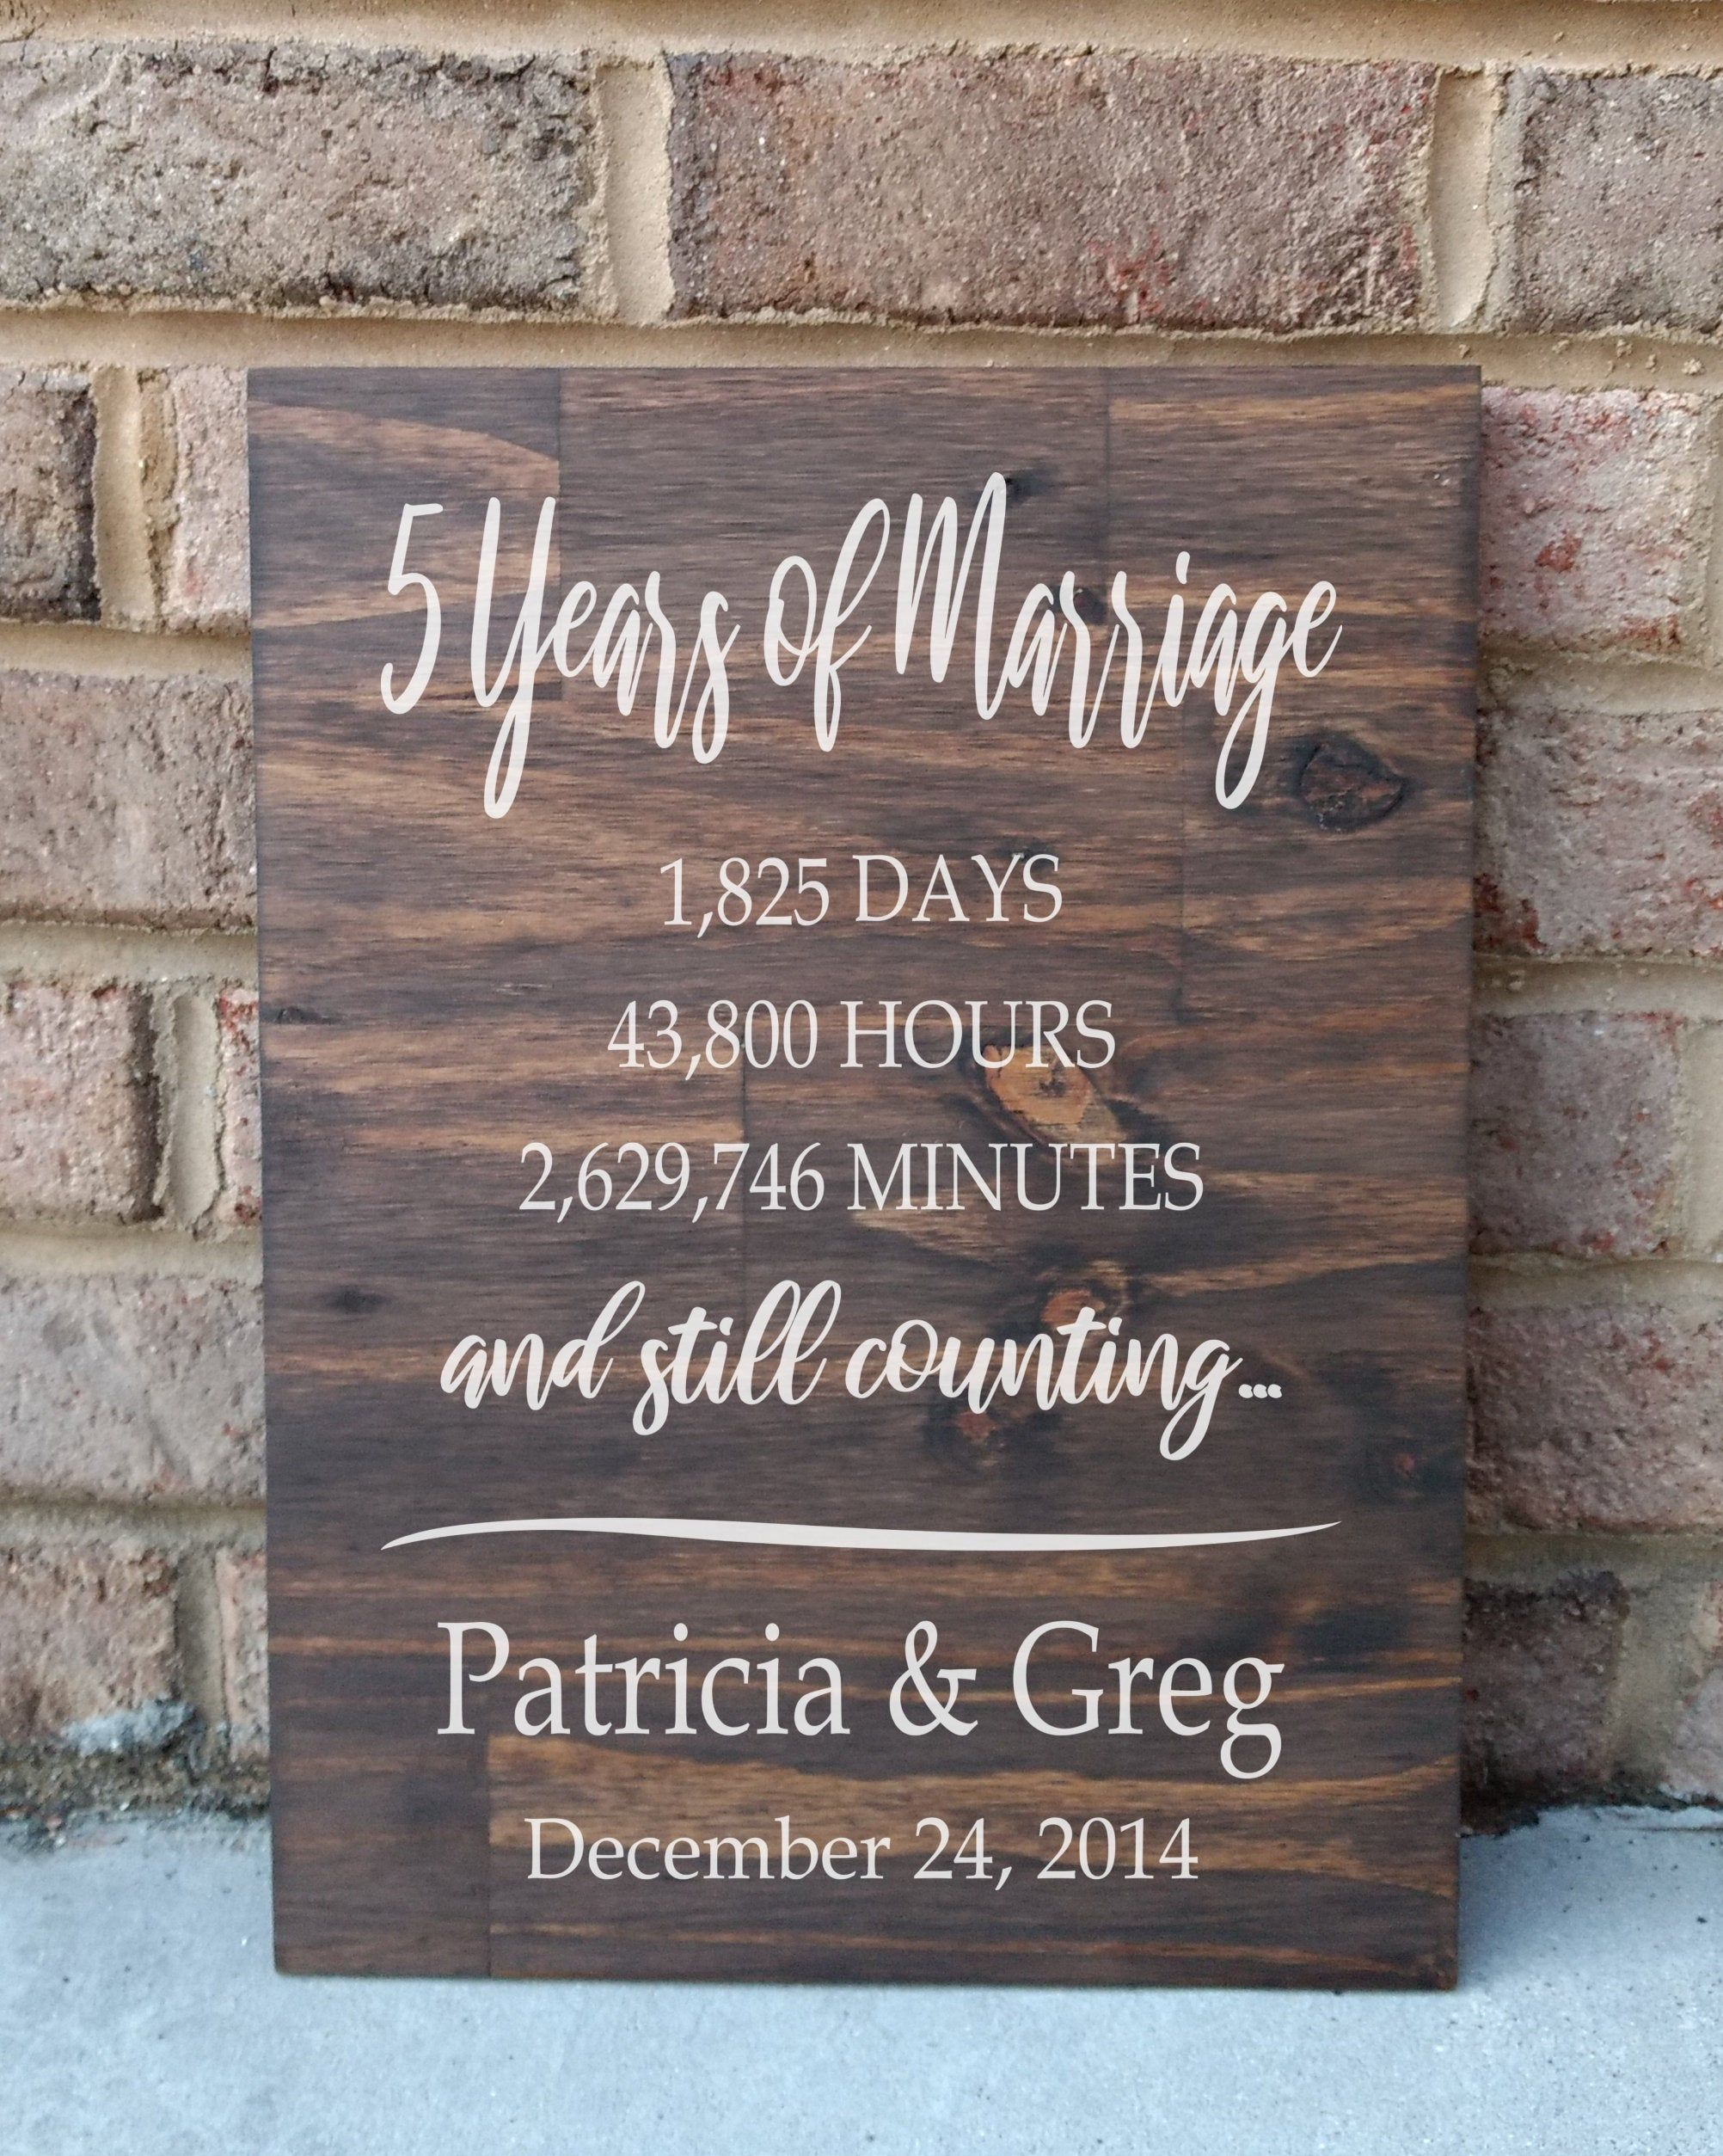 5 Years of Marriage Hand Painted Wood Sign 5th Anniversary